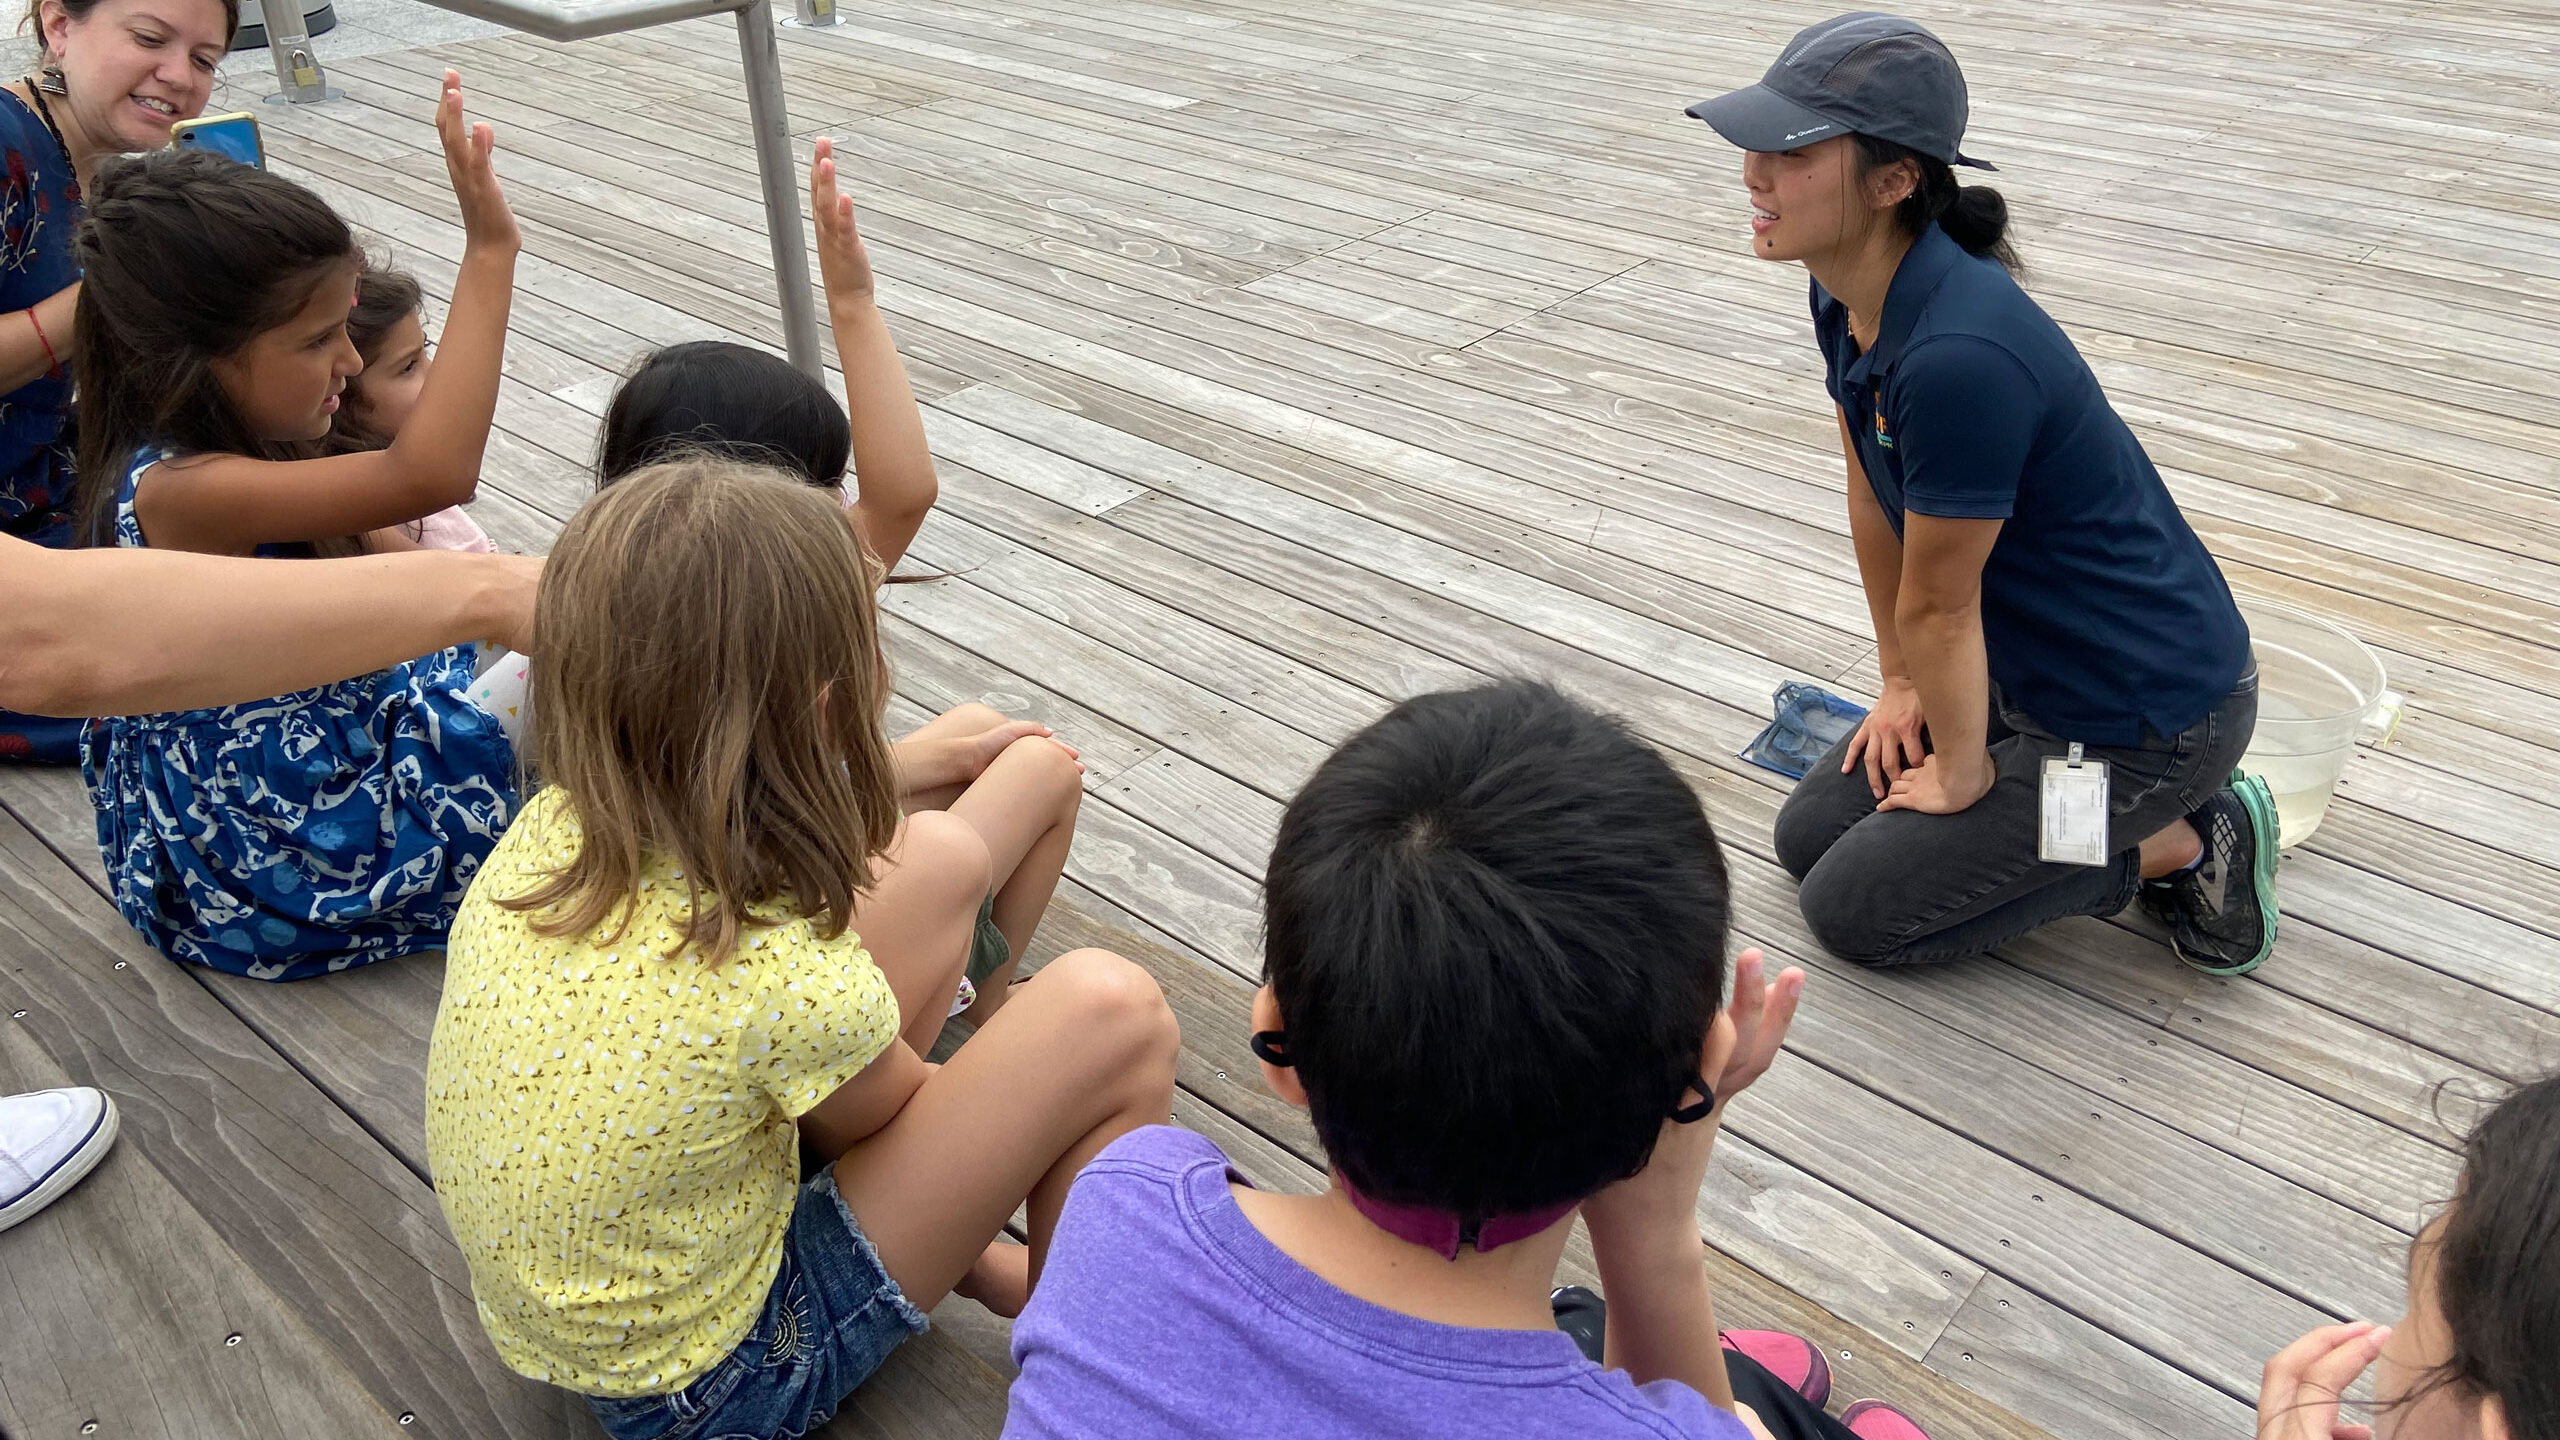 HRPK River Project Park educators lead discussion with young students about the native wildlife and ecology of the Hudson River from the Pier 26 Tide Deck